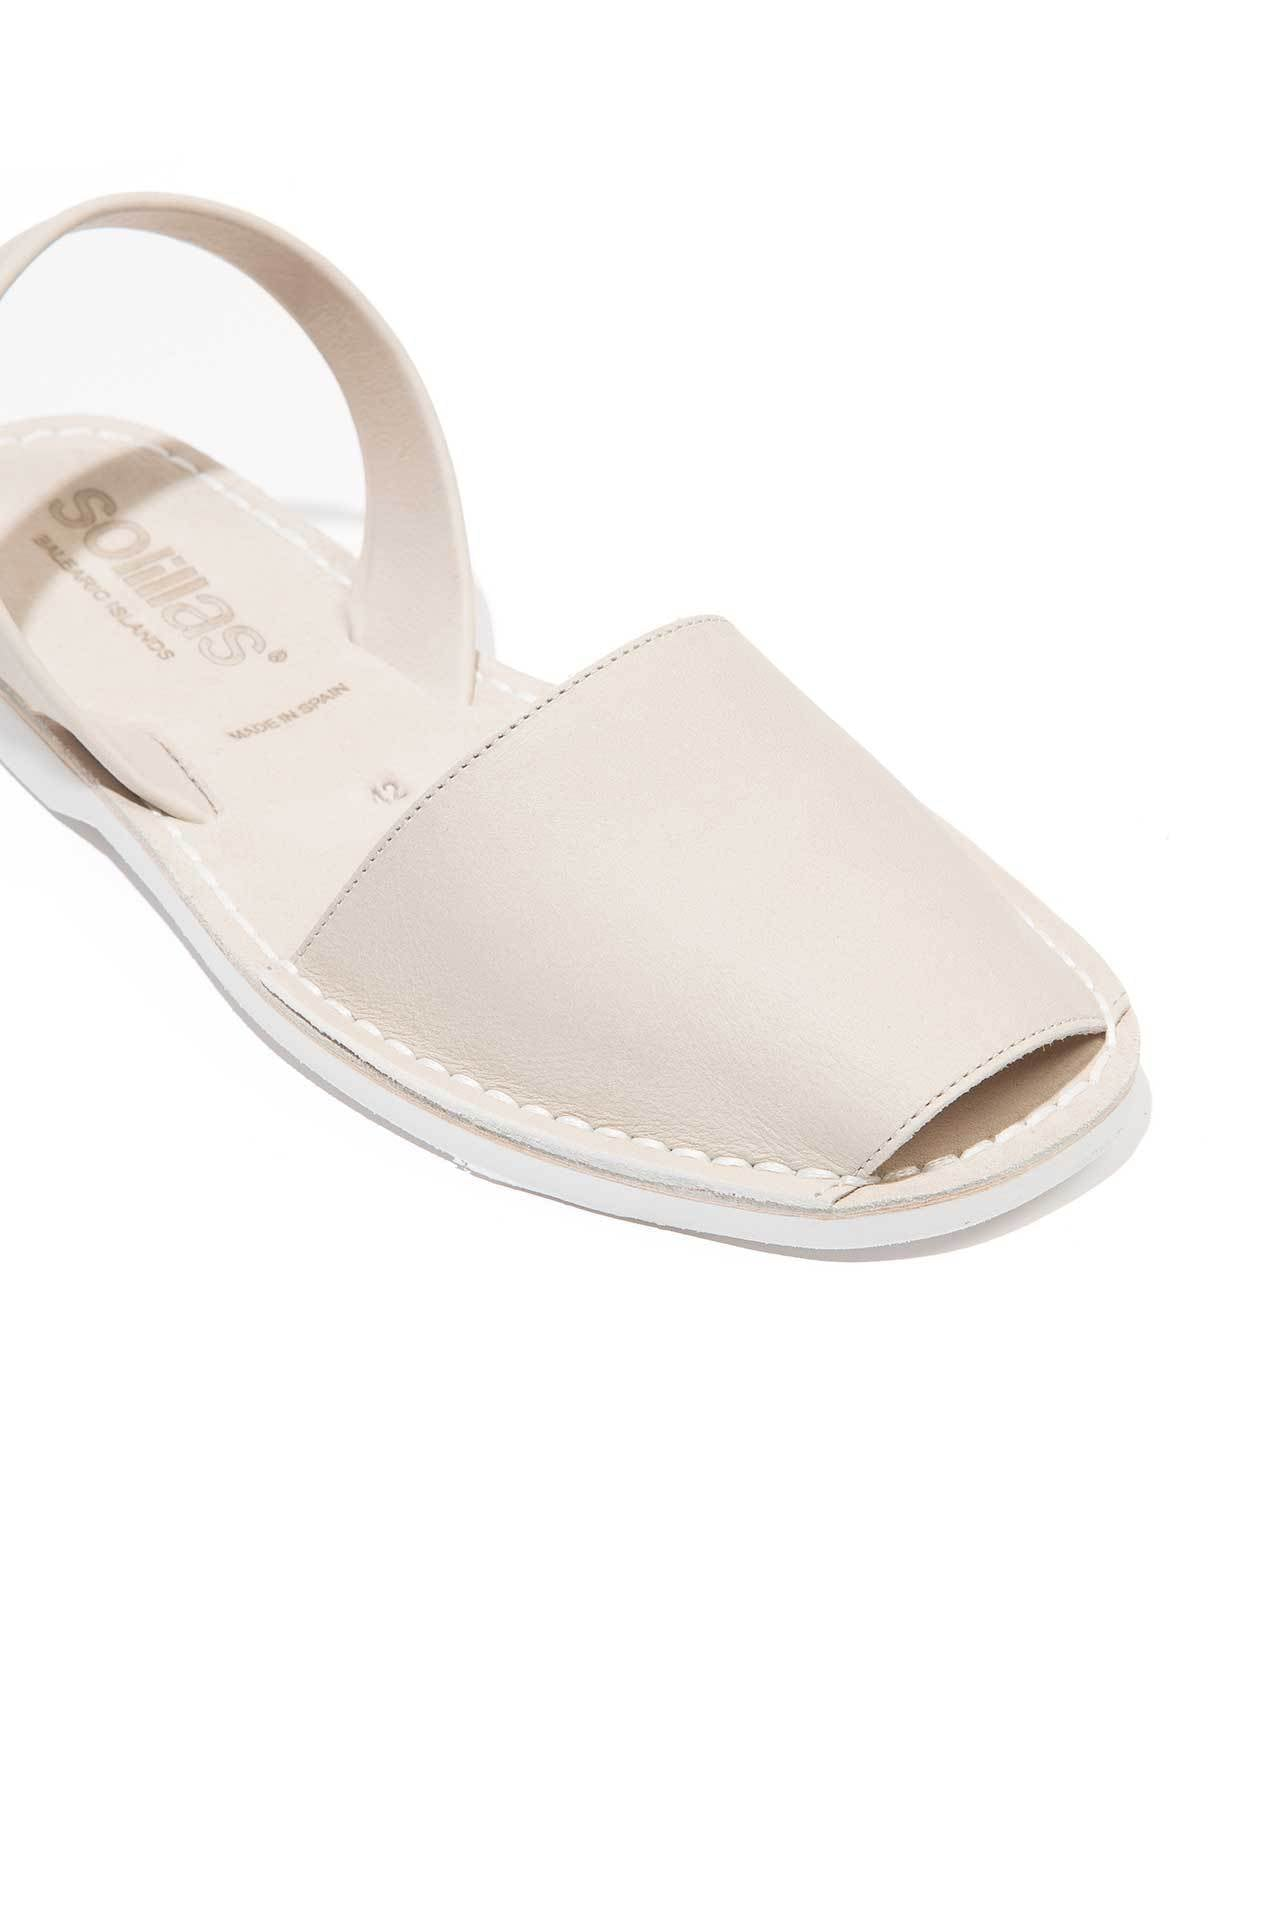 7b1db7c8fb92 Surf - Leather White Sole sandals